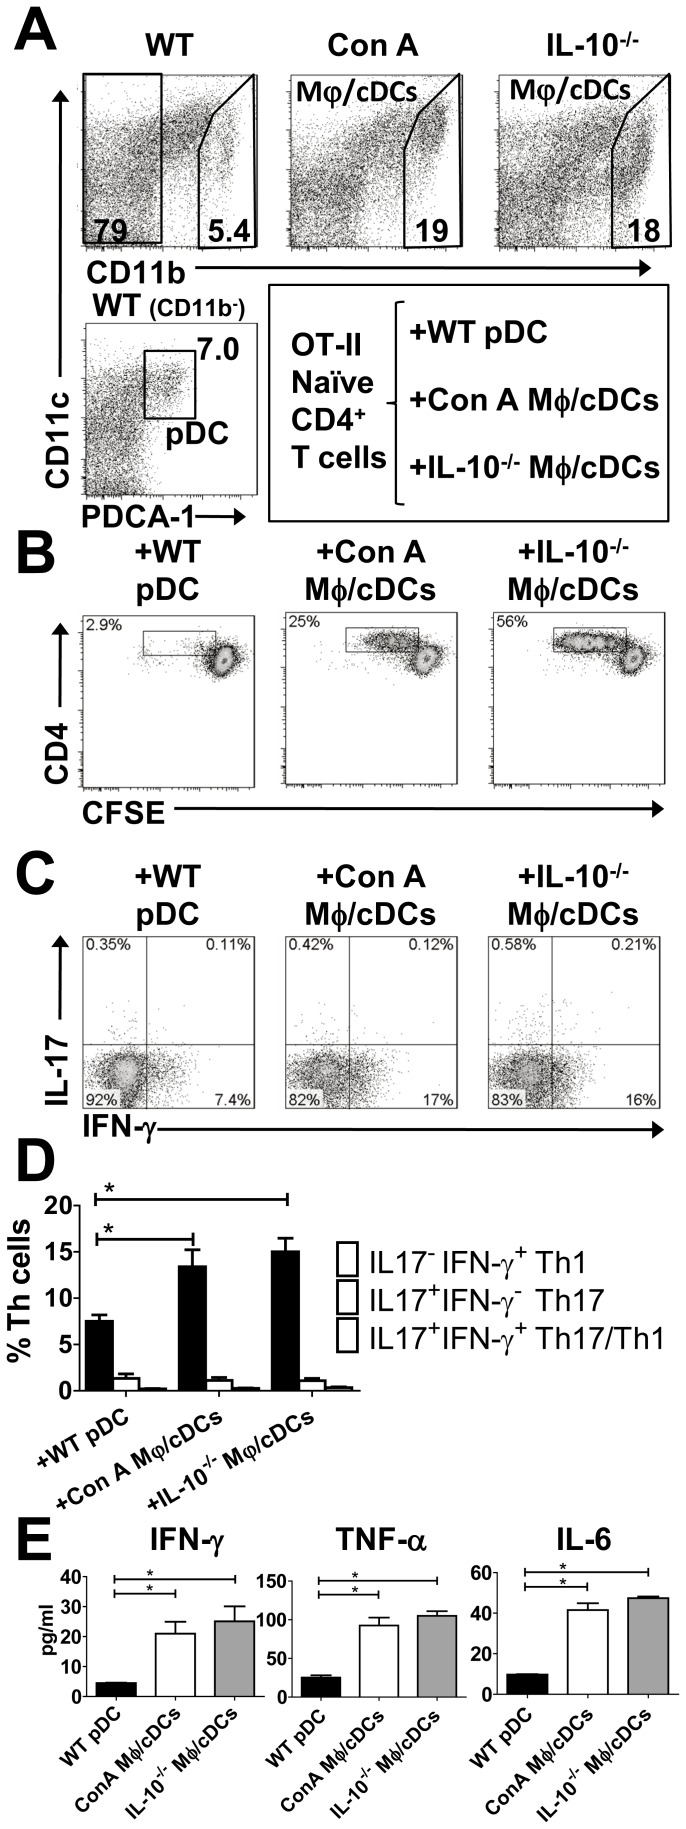 Hepatic Mφ/cDCs cells under colitic conditions induce a Th1 inflammatory response. ( A ) FACS analysis of PDCA-1 + CD11b − CD11c int pDCs from the livers of WT (left column) mice. We also analyzed CD11b + CD11c − Mφs from the livers of ConA-treated (middle) and IL-10 −/− (right) mice, respectively. Dead cells were excluded with 7AAD staining. ( B ) Proliferation of naïve CFSE-labeled splenic CD4 + T cells from OT-II mice, and co-cultured WT pDCs, ConA Mφs, or IL-10 −/− Mφs in the presence of OVA. Dead cells were excluded with 7AAD staining and CD4 + T cells gated on CD3 + CD4 + cells are shown (B and C). Data are representative of three independent experiments. ( C ) Intracellular IFN-γ and IL-17A expression in CD4 + T cells co-cultured with WT pDCs, ConA Mφs, or IL-10 −/− Mφs in the presence of OVA. Data are representative of three independent experiments. ( D ) Proportion of IFN-γ + IL-17A − , IFN-γ − IL-17A + , and IFN-γ + IL-17A + cells among the Th cell population. ( E ) Cytokine concentrations in the culture supernatant of OT-II CD4 + T cells that were co-cultured with WT pDCs or ConA Mφs. Data are representative of three independent experiments. Each experiment was performed using duplicate samples. * P